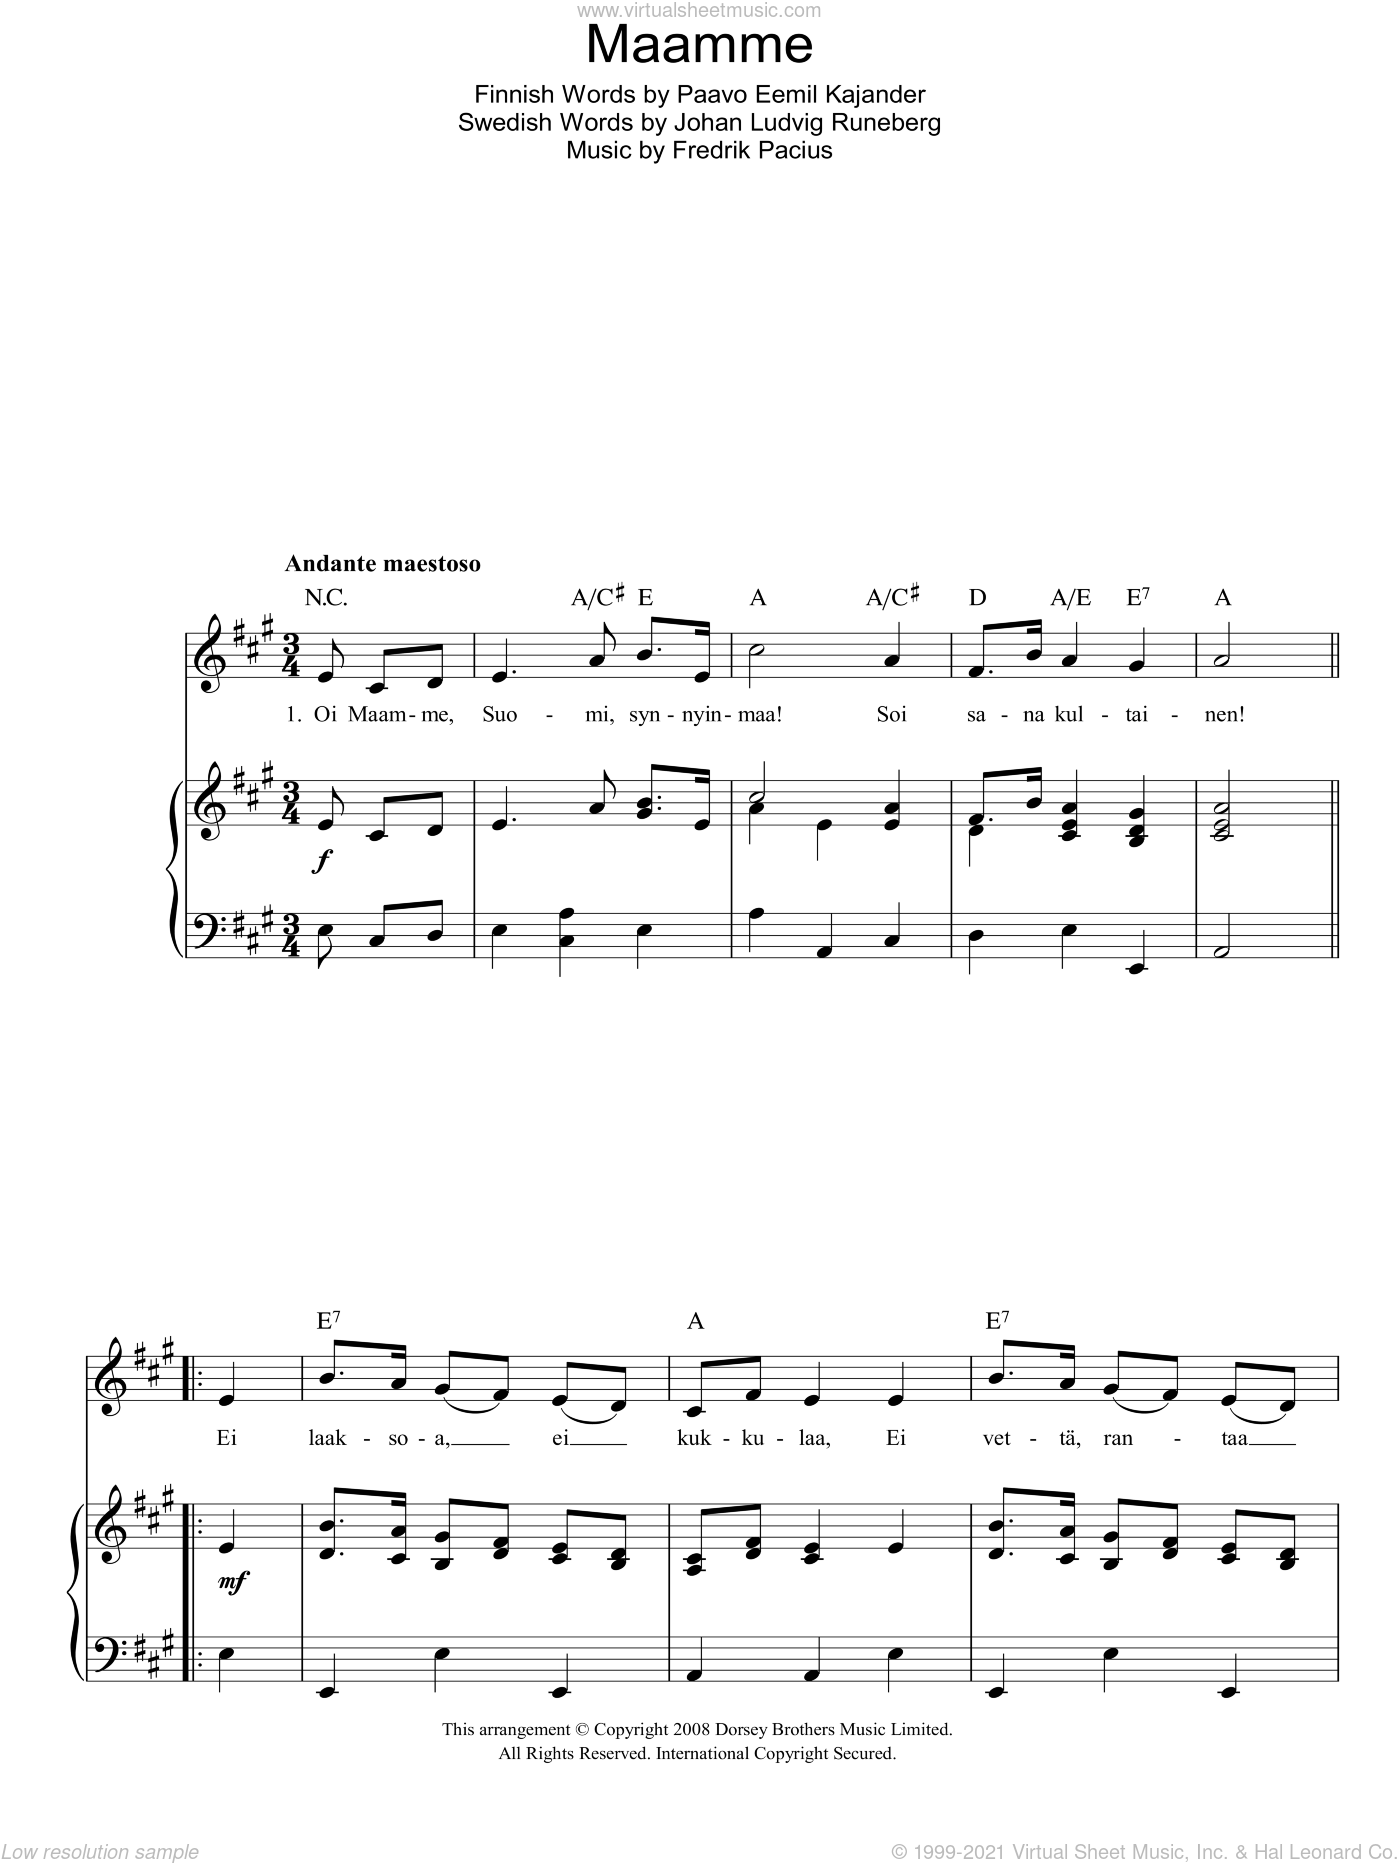 Maamme (Finnish National Anthem) sheet music for voice, piano or guitar by Paavo Eemil Kajander